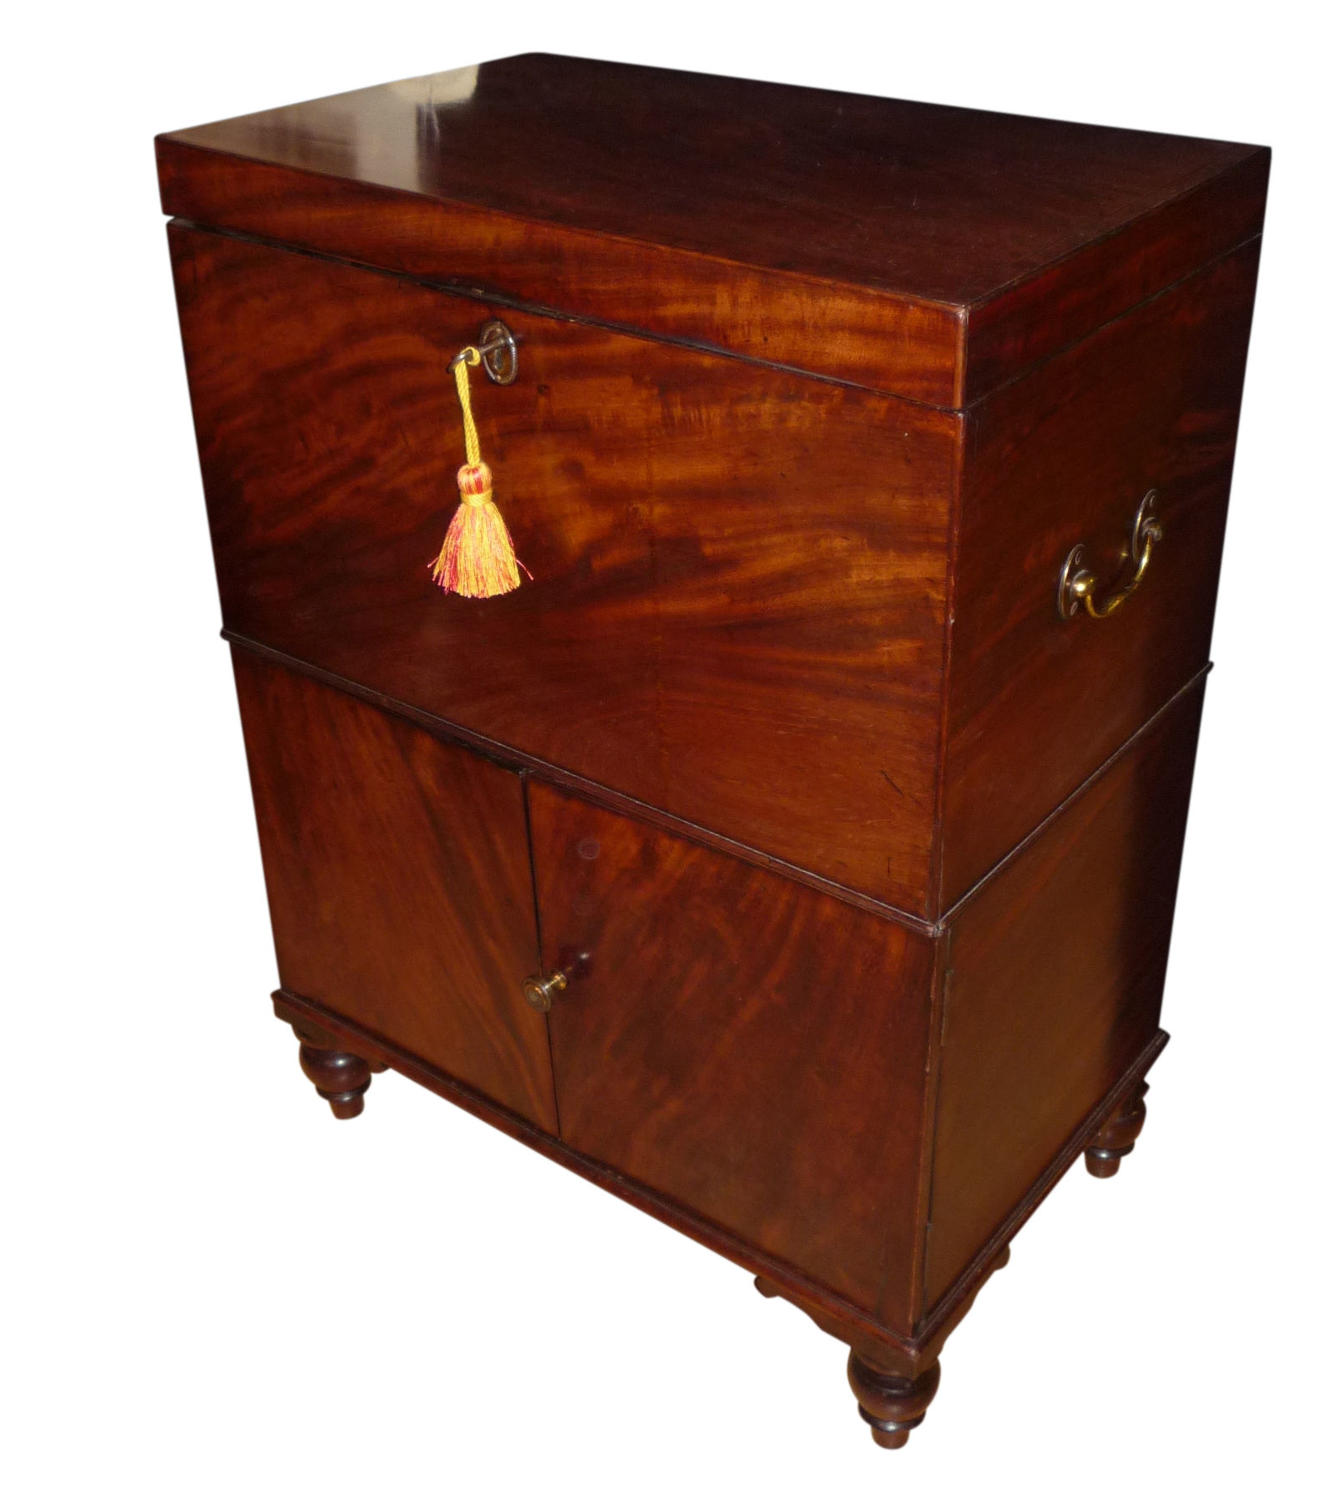 Georgian inlaid mahogany wine cellarette c1820